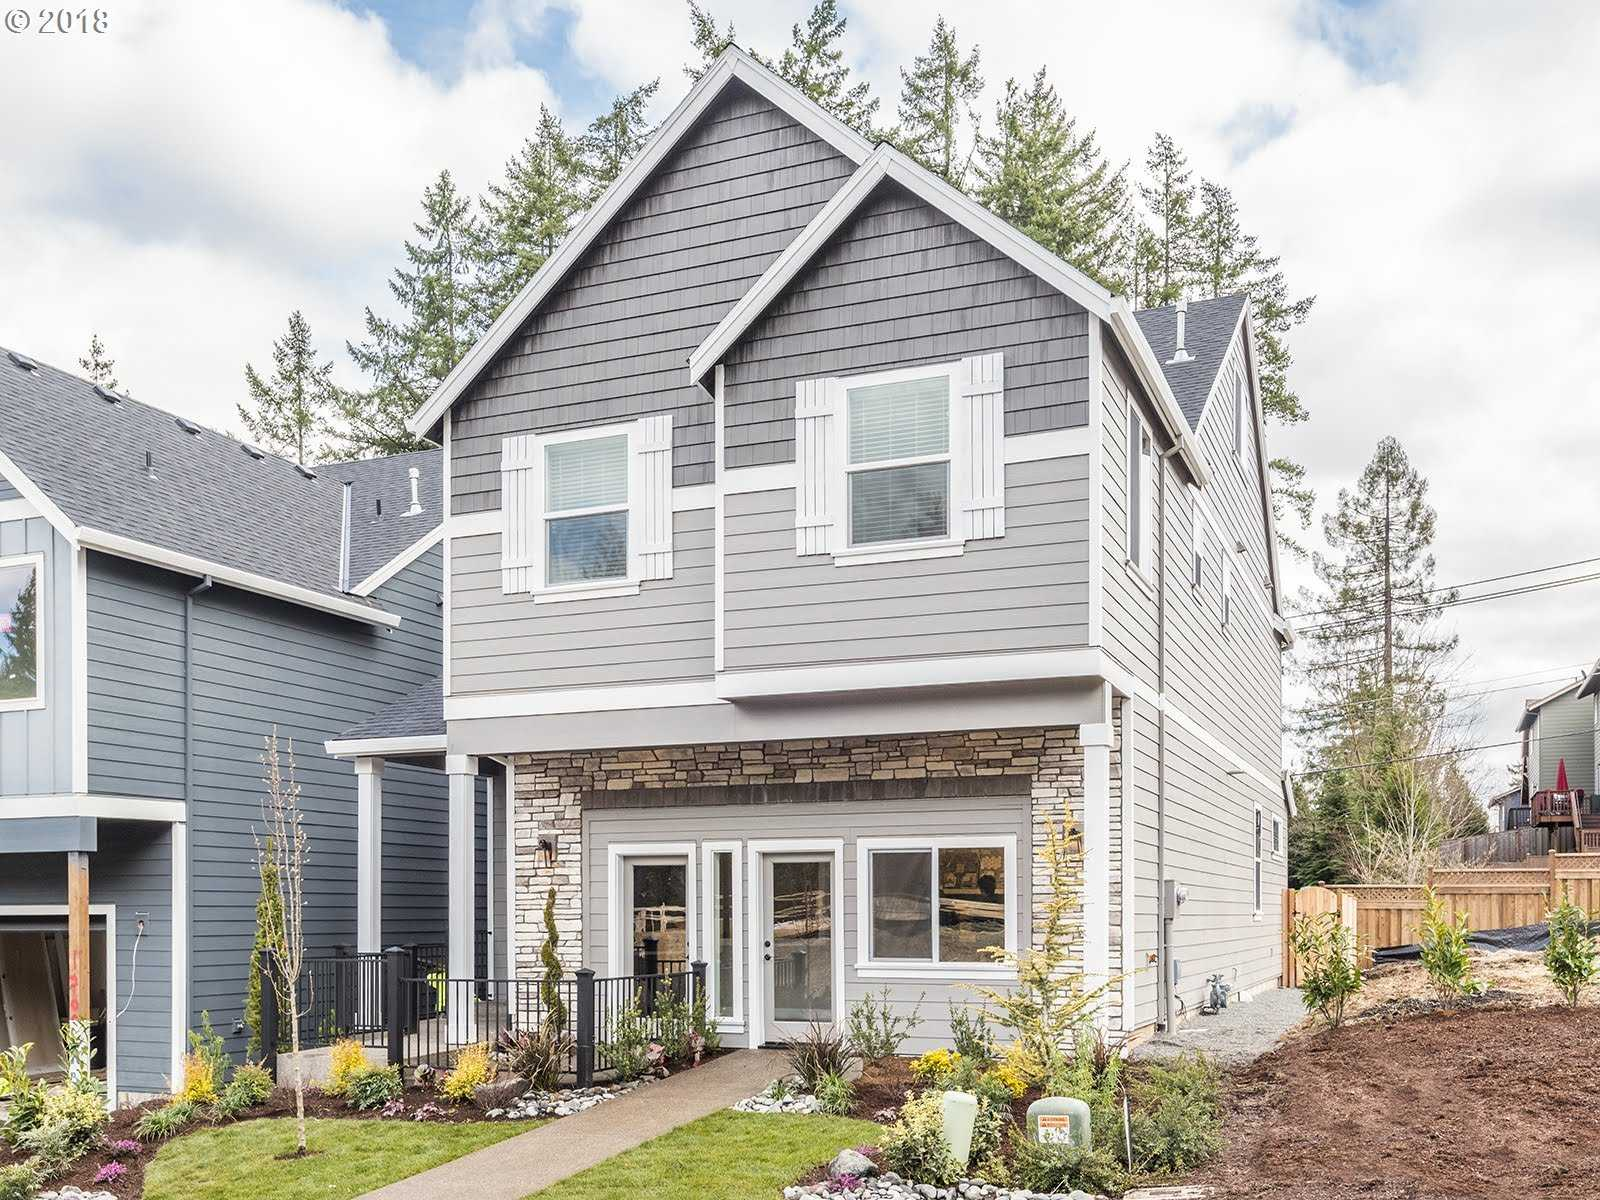 $469,950 - 4Br/3Ba -  for Sale in Oldham Meadows Lot 37, Beaverton